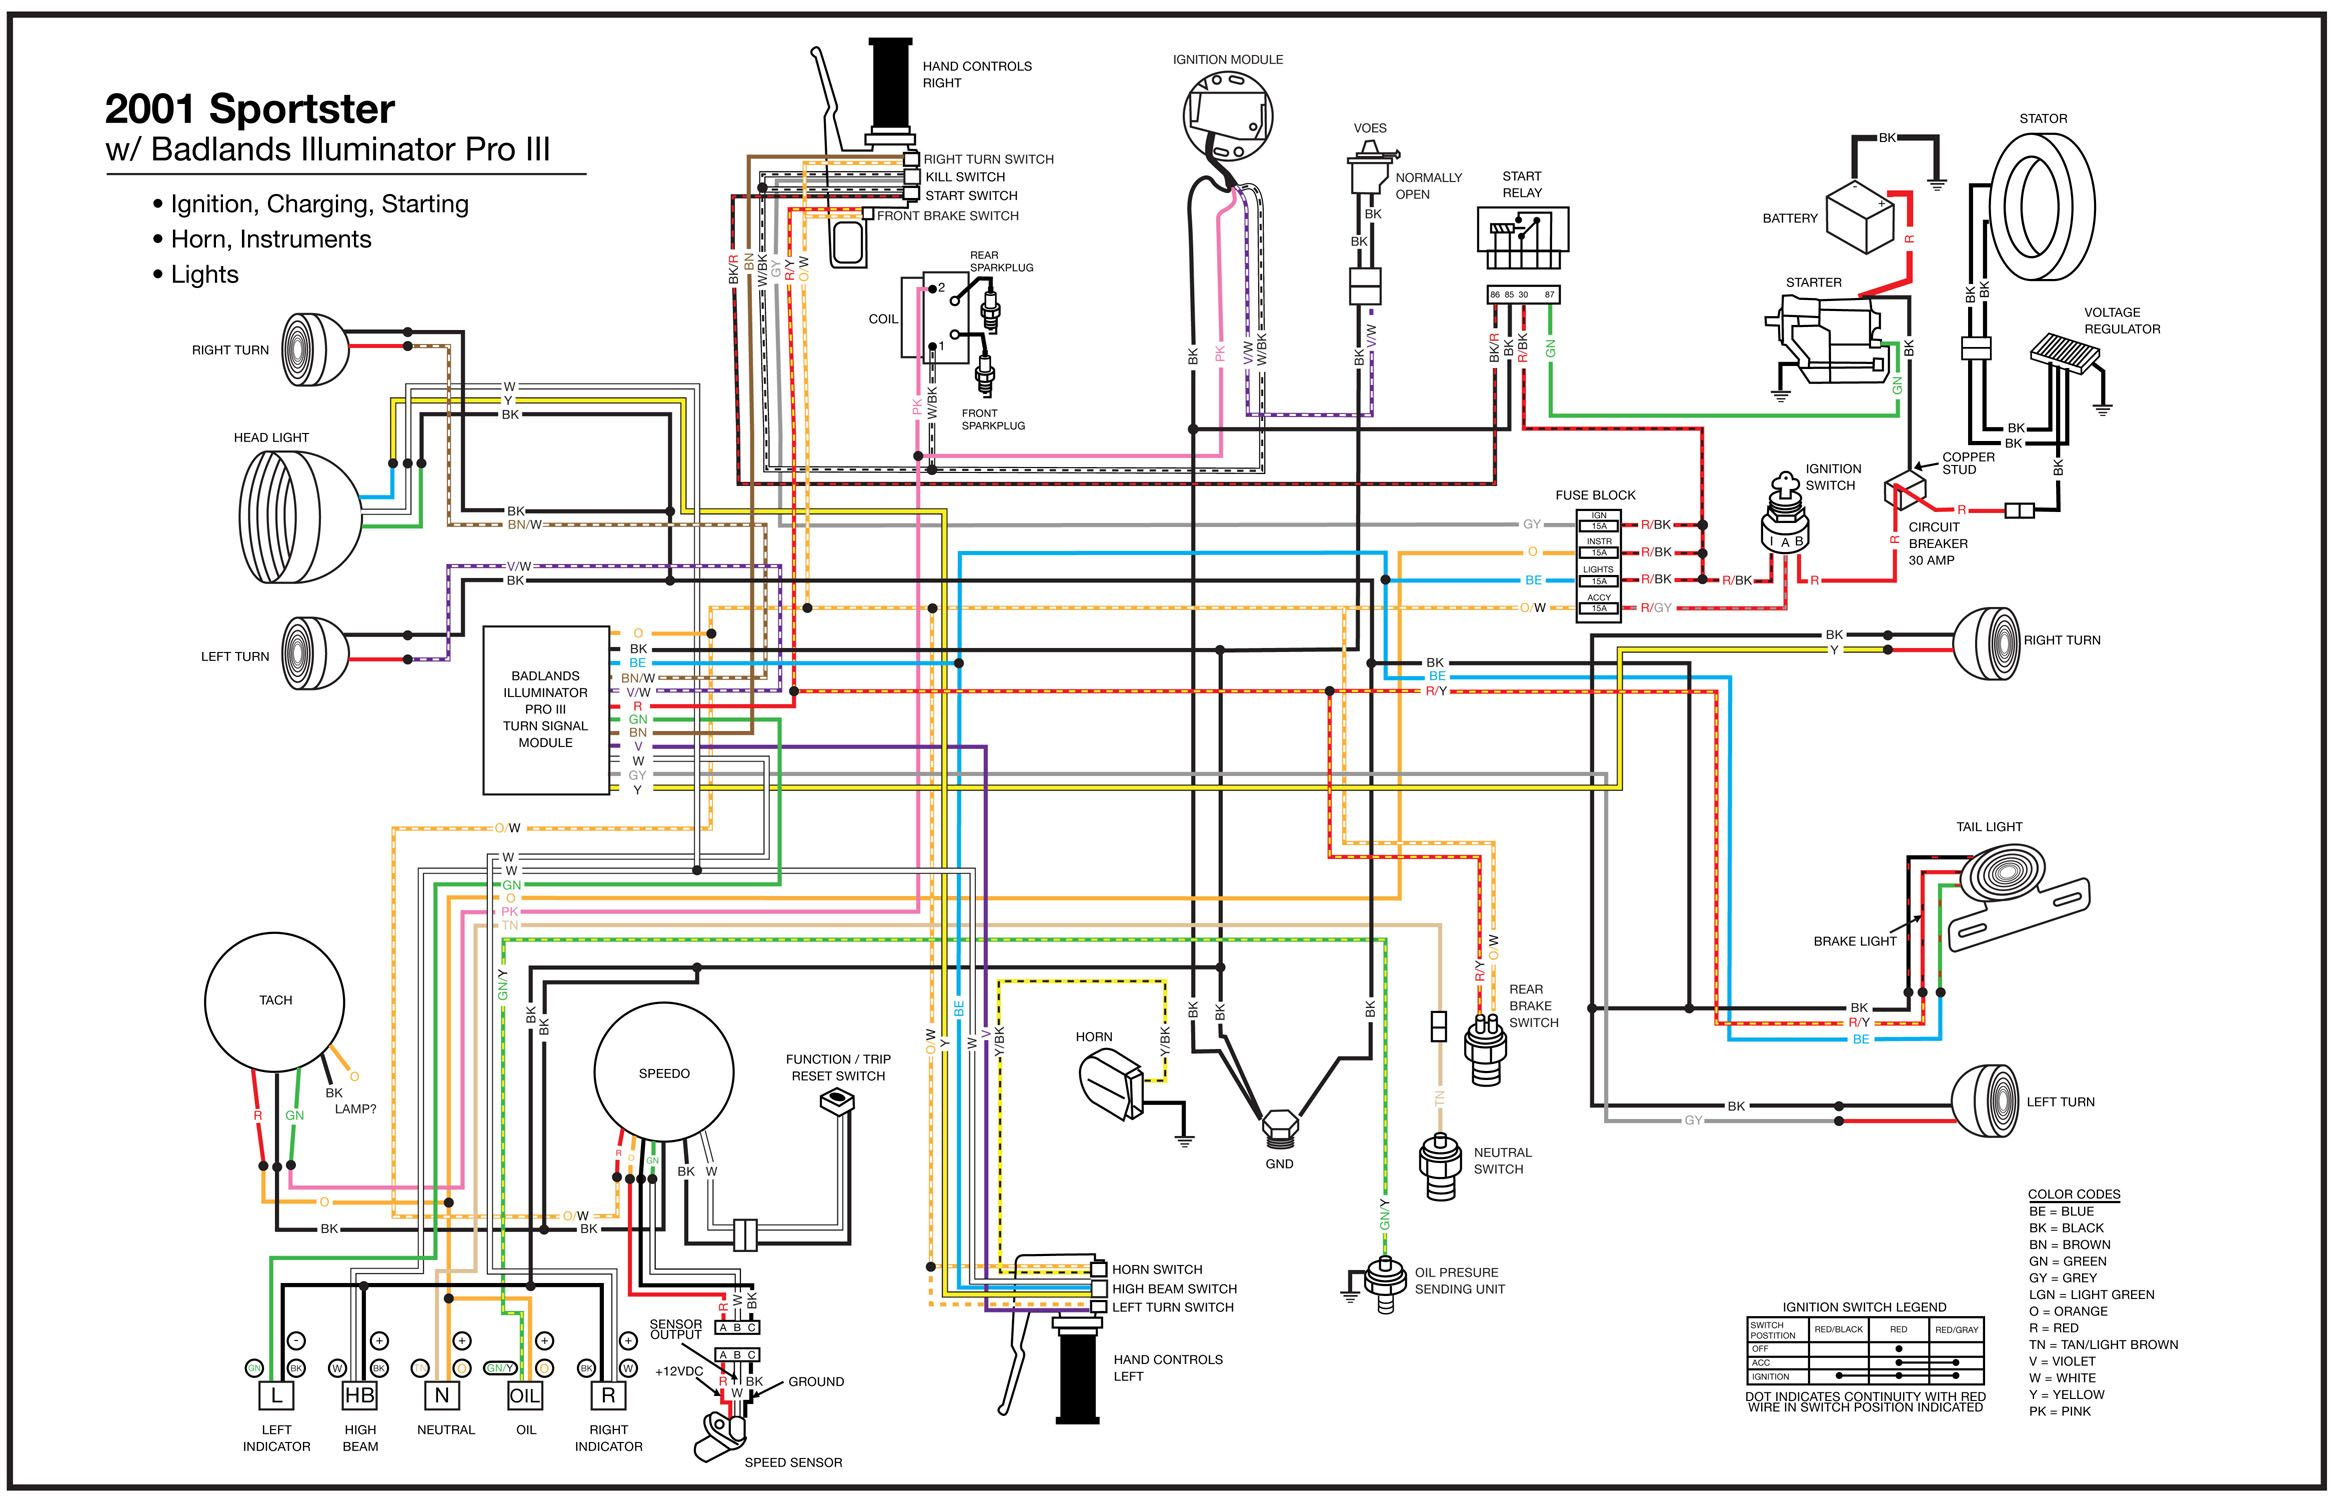 c7fe5056f4c8a8fa9386de3a912fa987 rigid_evo sportster illuminator pro 3 wiring diagram the harley davidson motorcycle wiring diagrams at creativeand.co